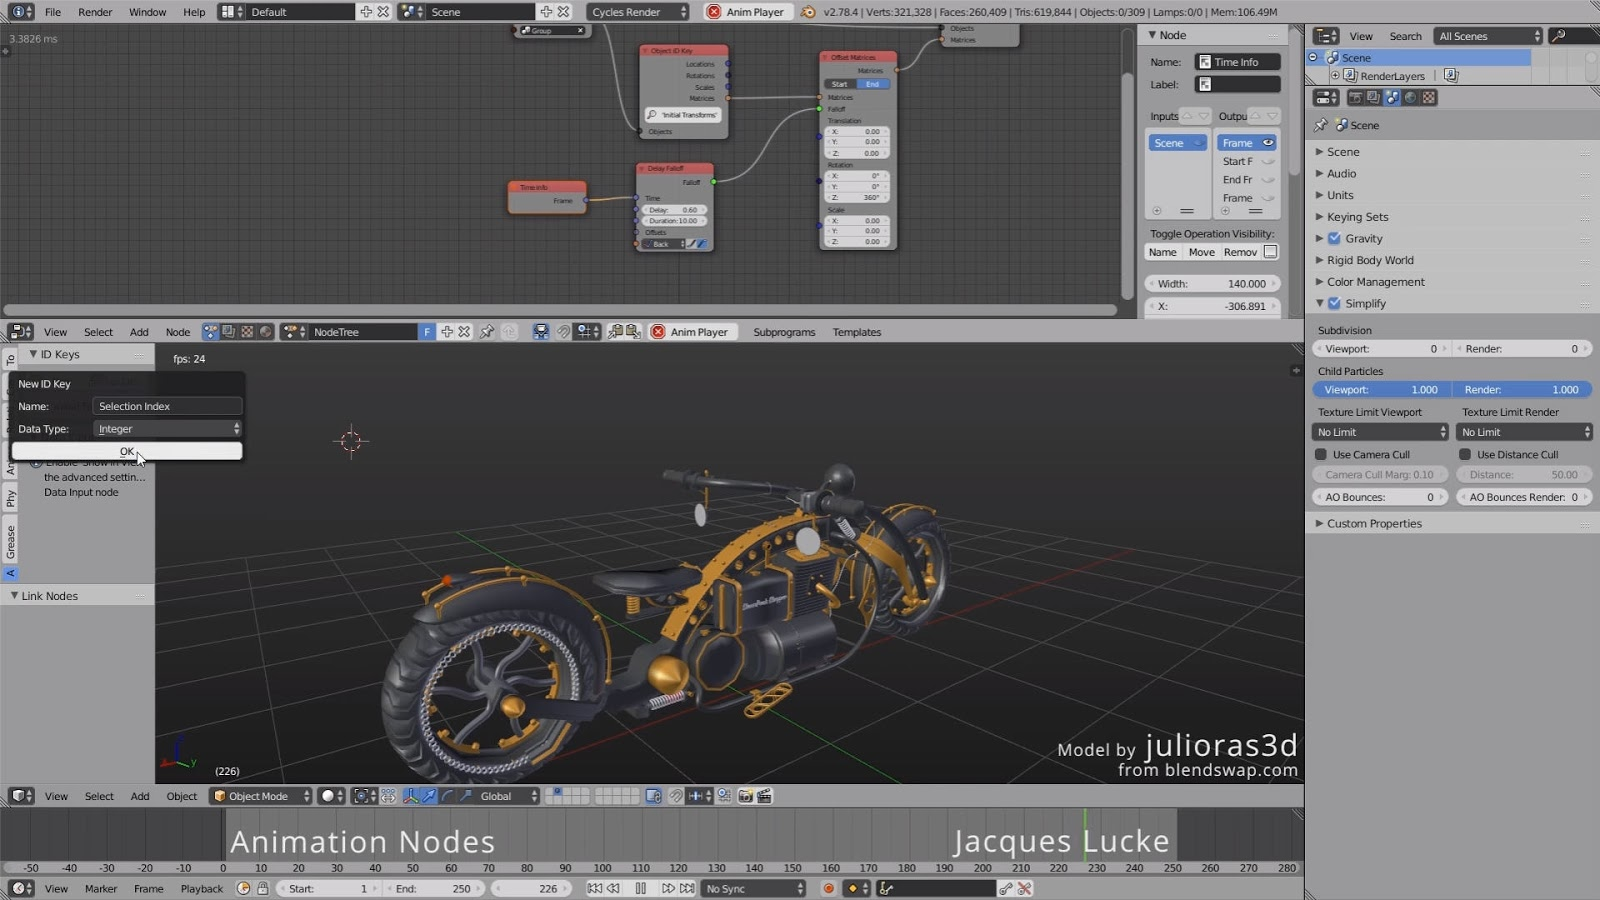 Download Animation Nodes 2 0 for Blender - Plugins Reviews